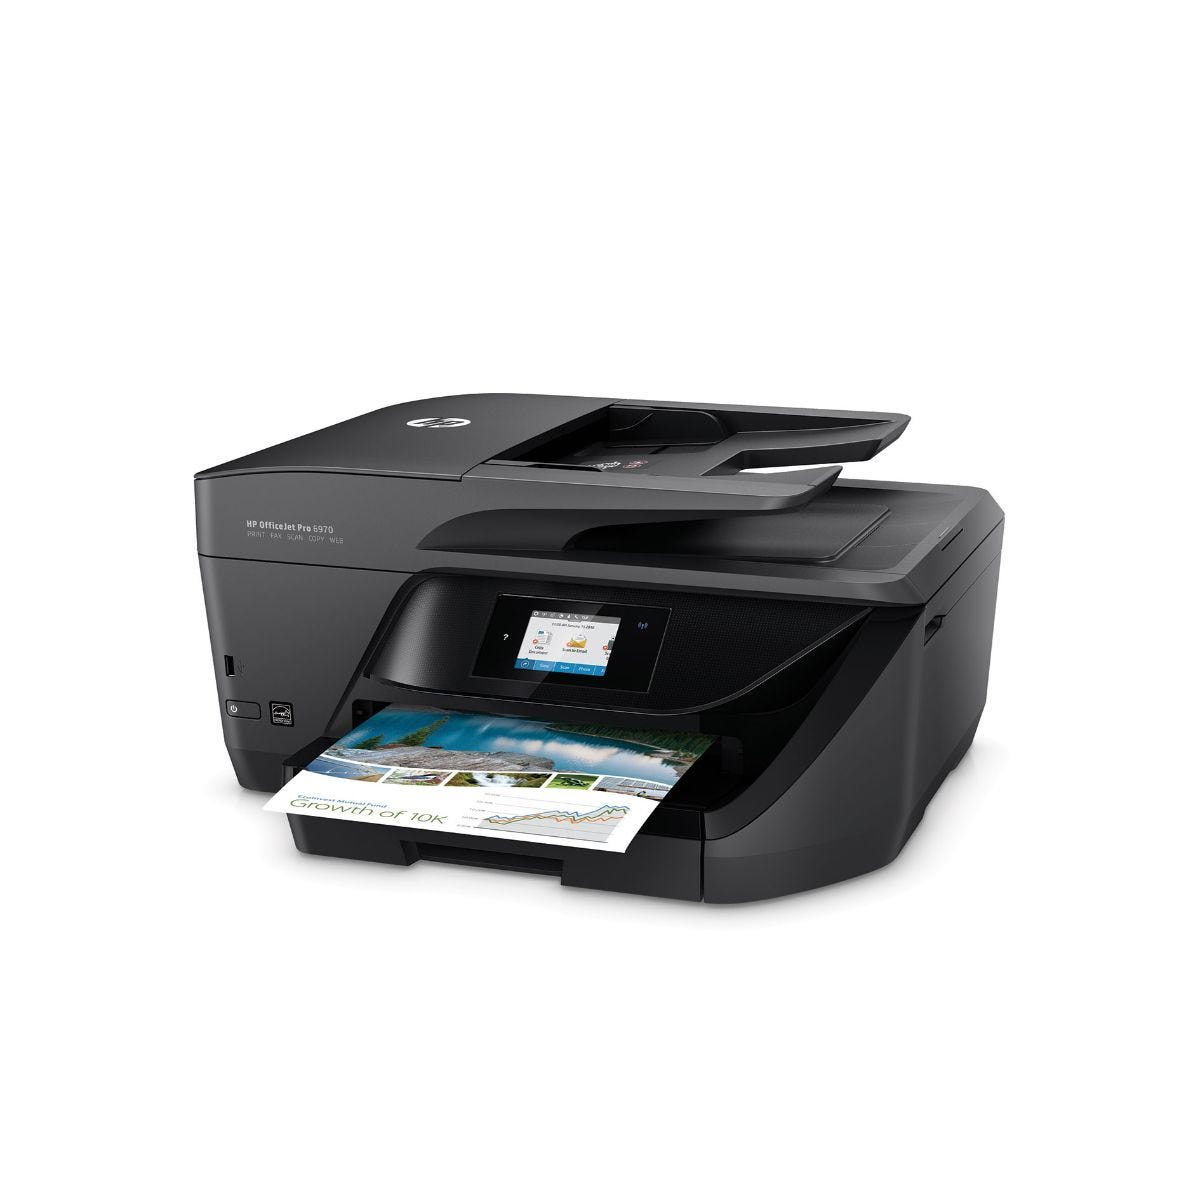 Image of HP OfficeJet Pro 6970 All-in-One Printer